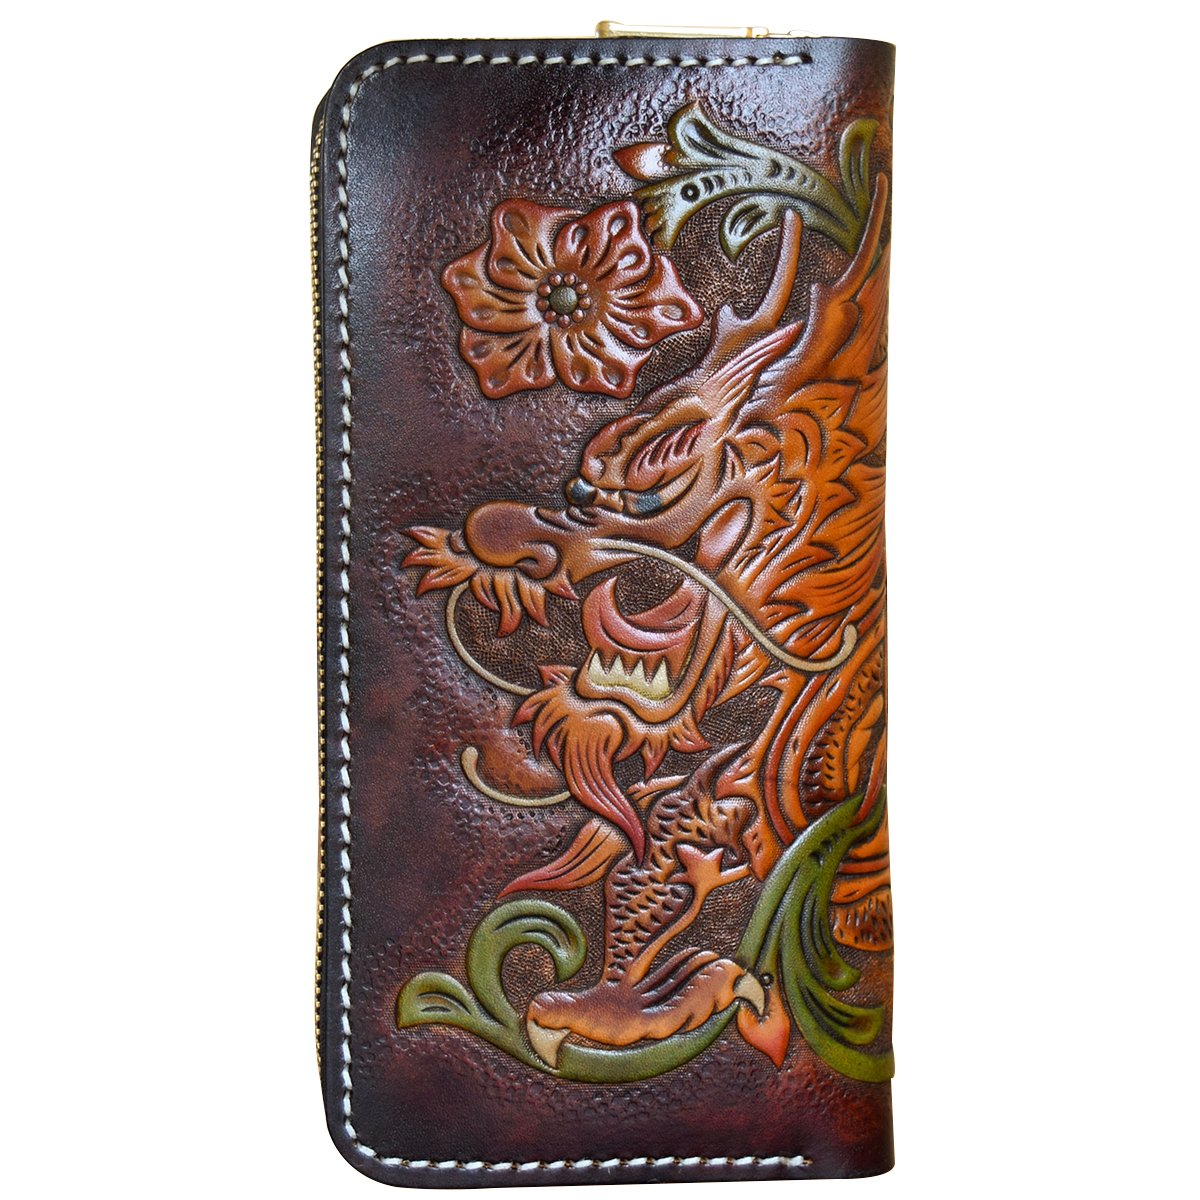 OLG.YAT Vegetable tanned leather Retro Genuine Leather Men's Wallets WLLTLL2 by OLG.YAT